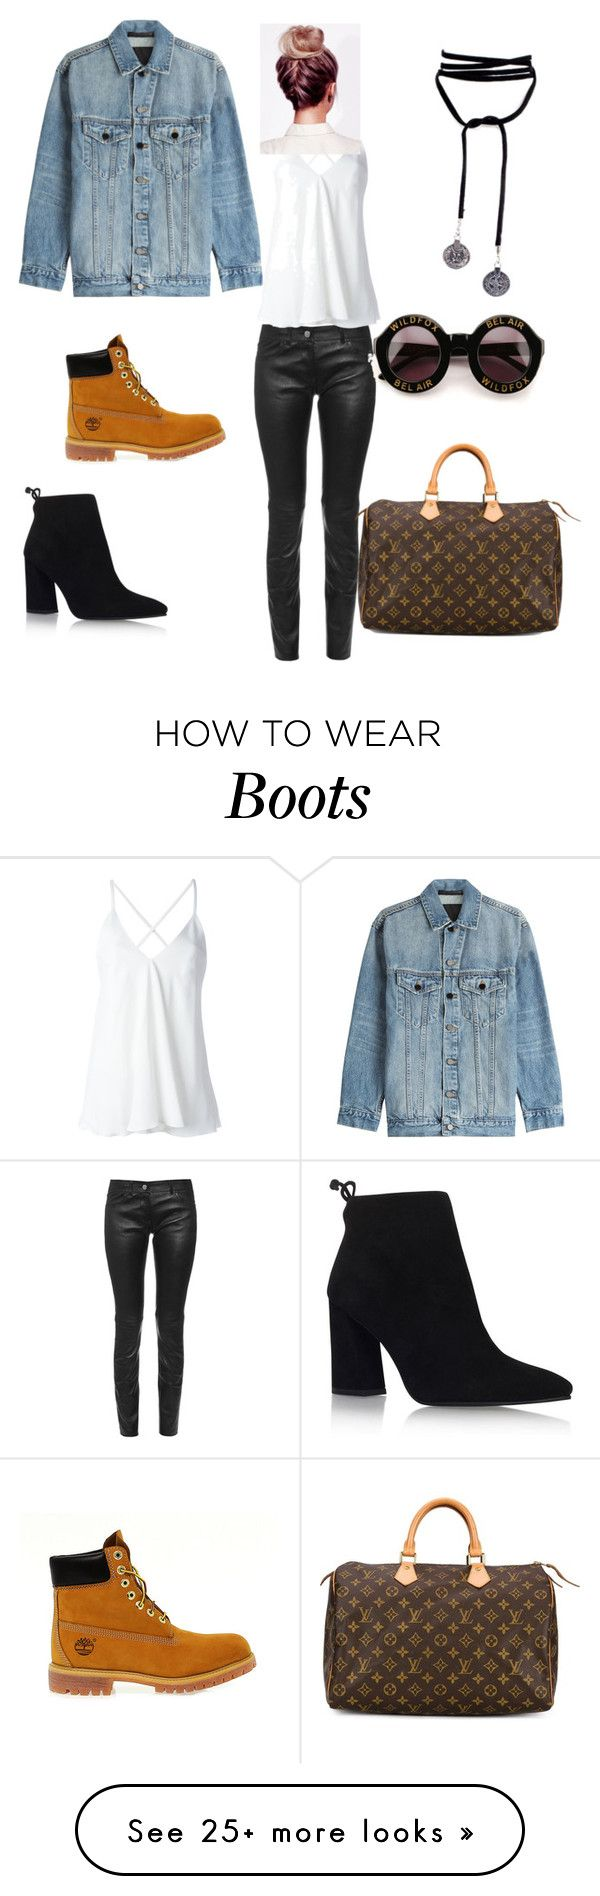 """""""Tims or boots?"""" by nubianempress89 on Polyvore featuring Alexander Wang, Balenciaga, Stuart Weitzman, Timberland, Louis Vuitton, Dondup and Wildfox"""